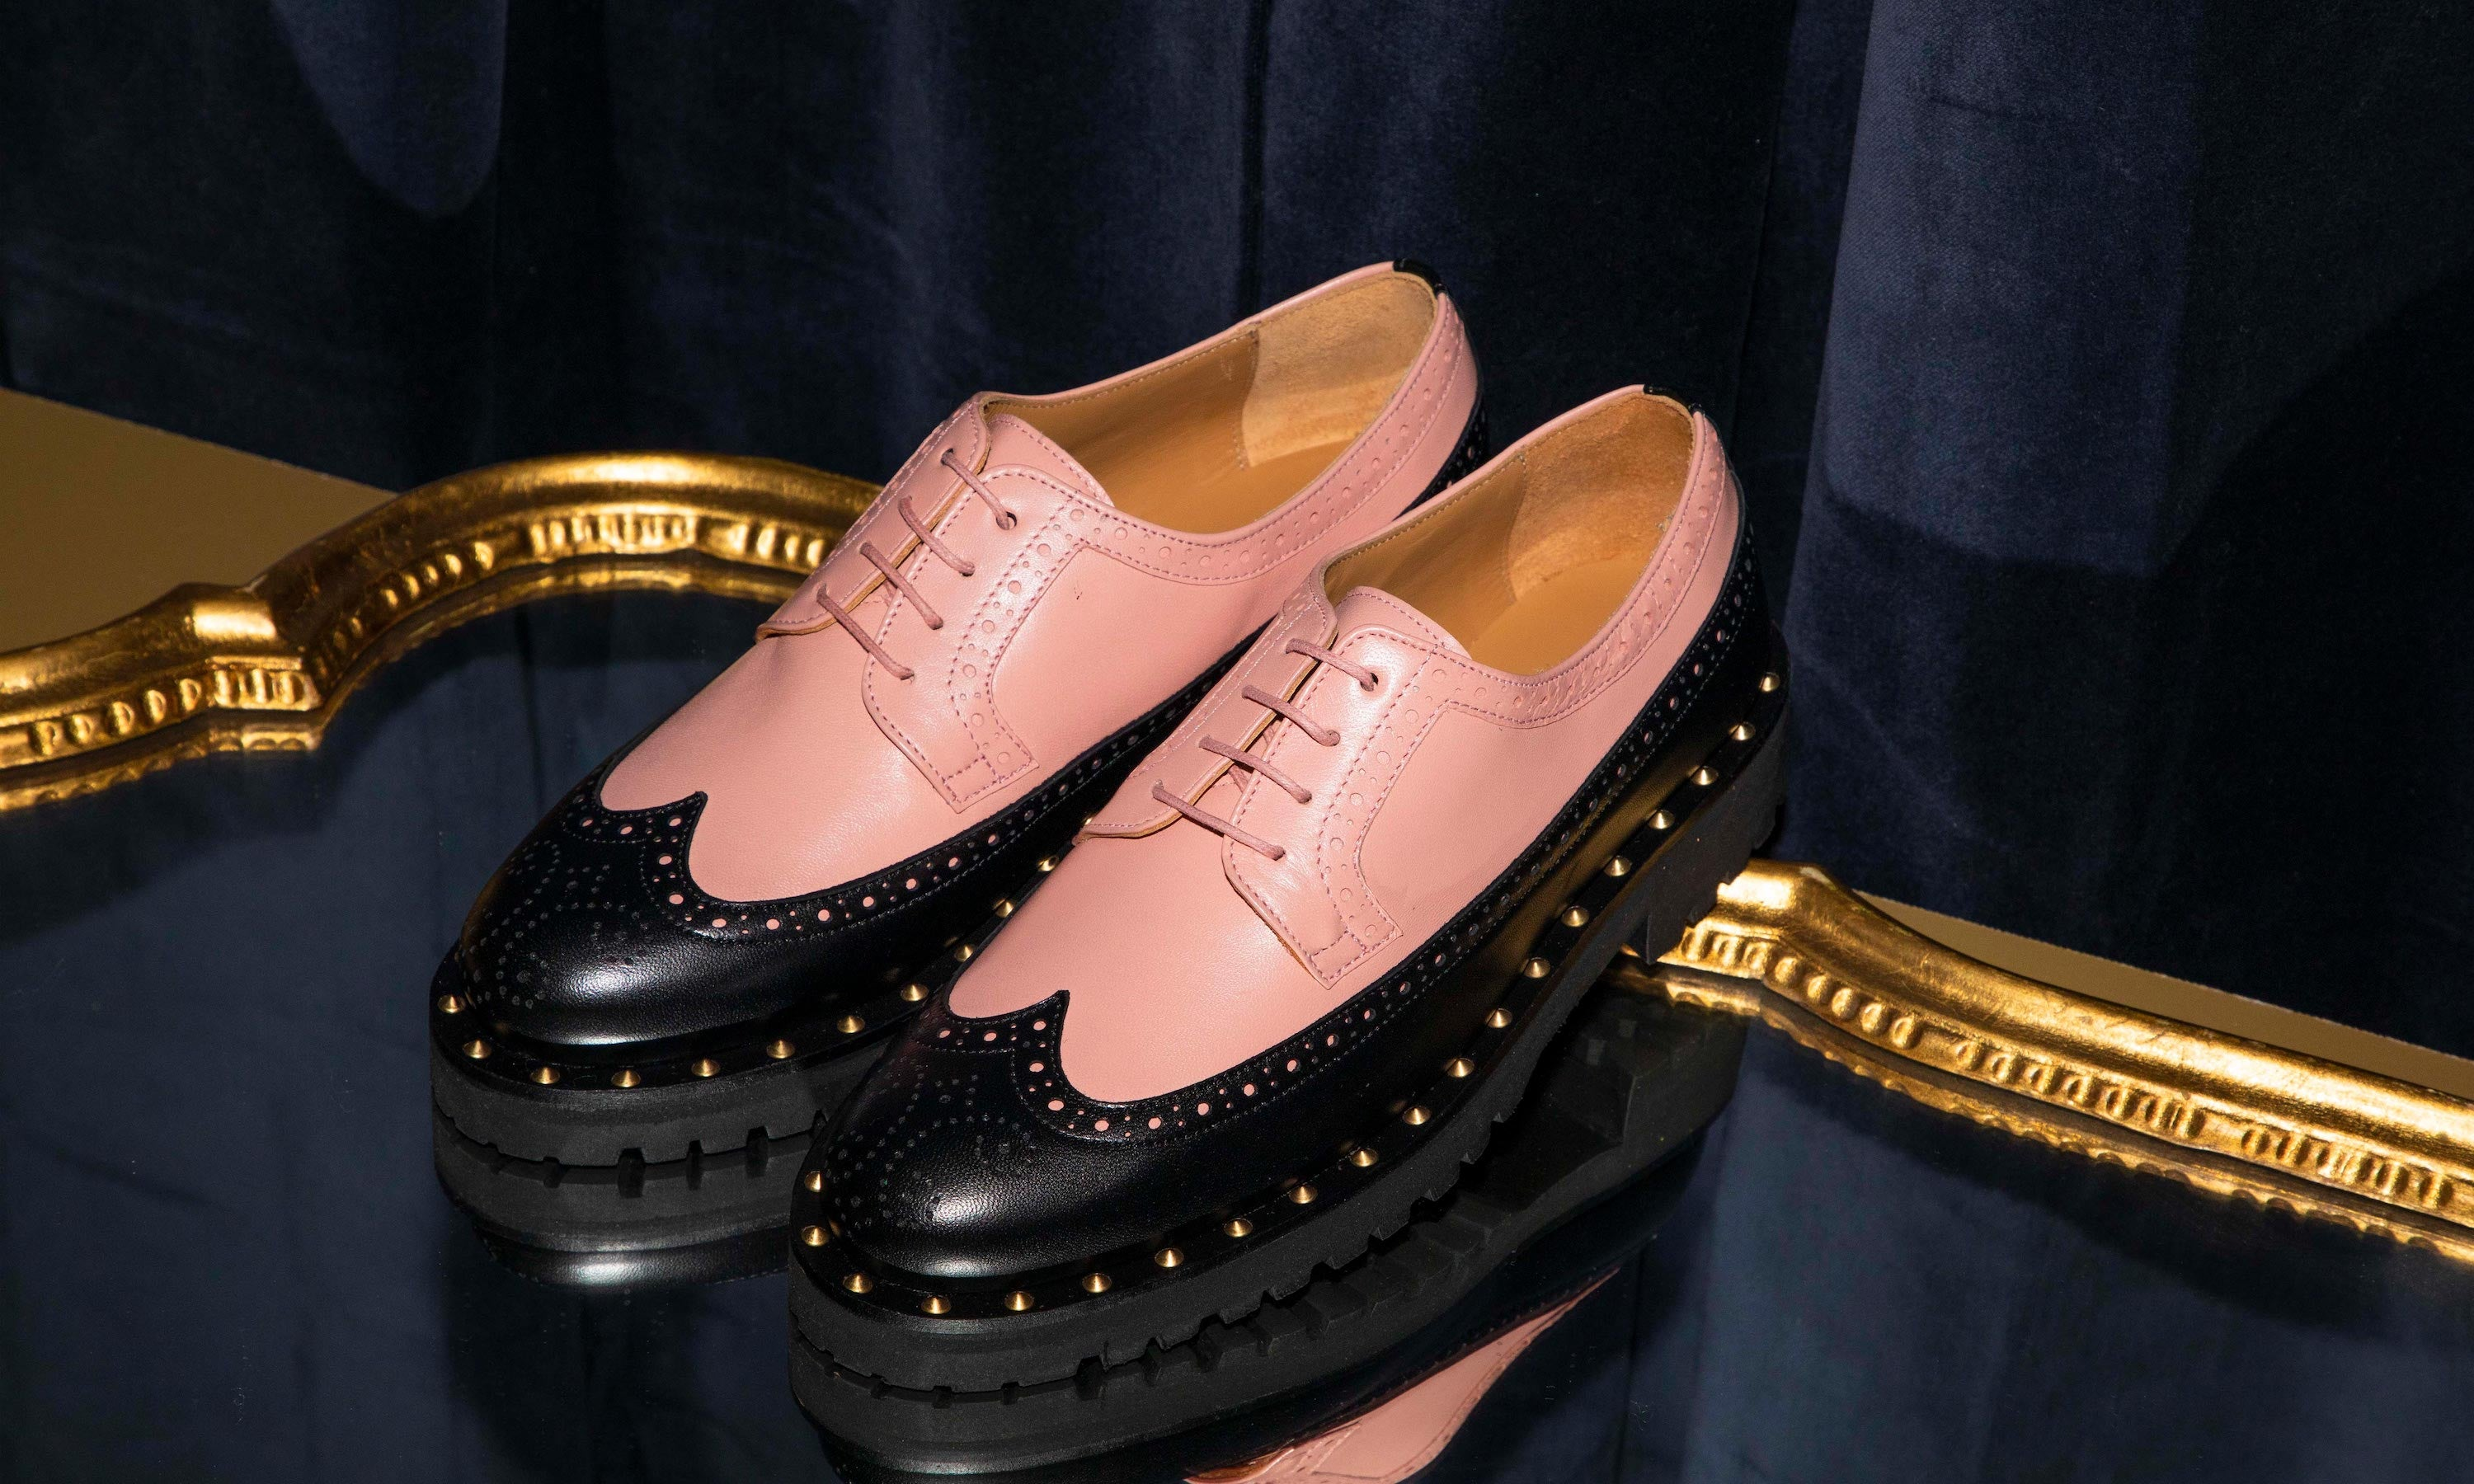 Flavia our long wing derby with a soft pink upper and black wing tip sits on a lush velvet backdrop with gold detailing